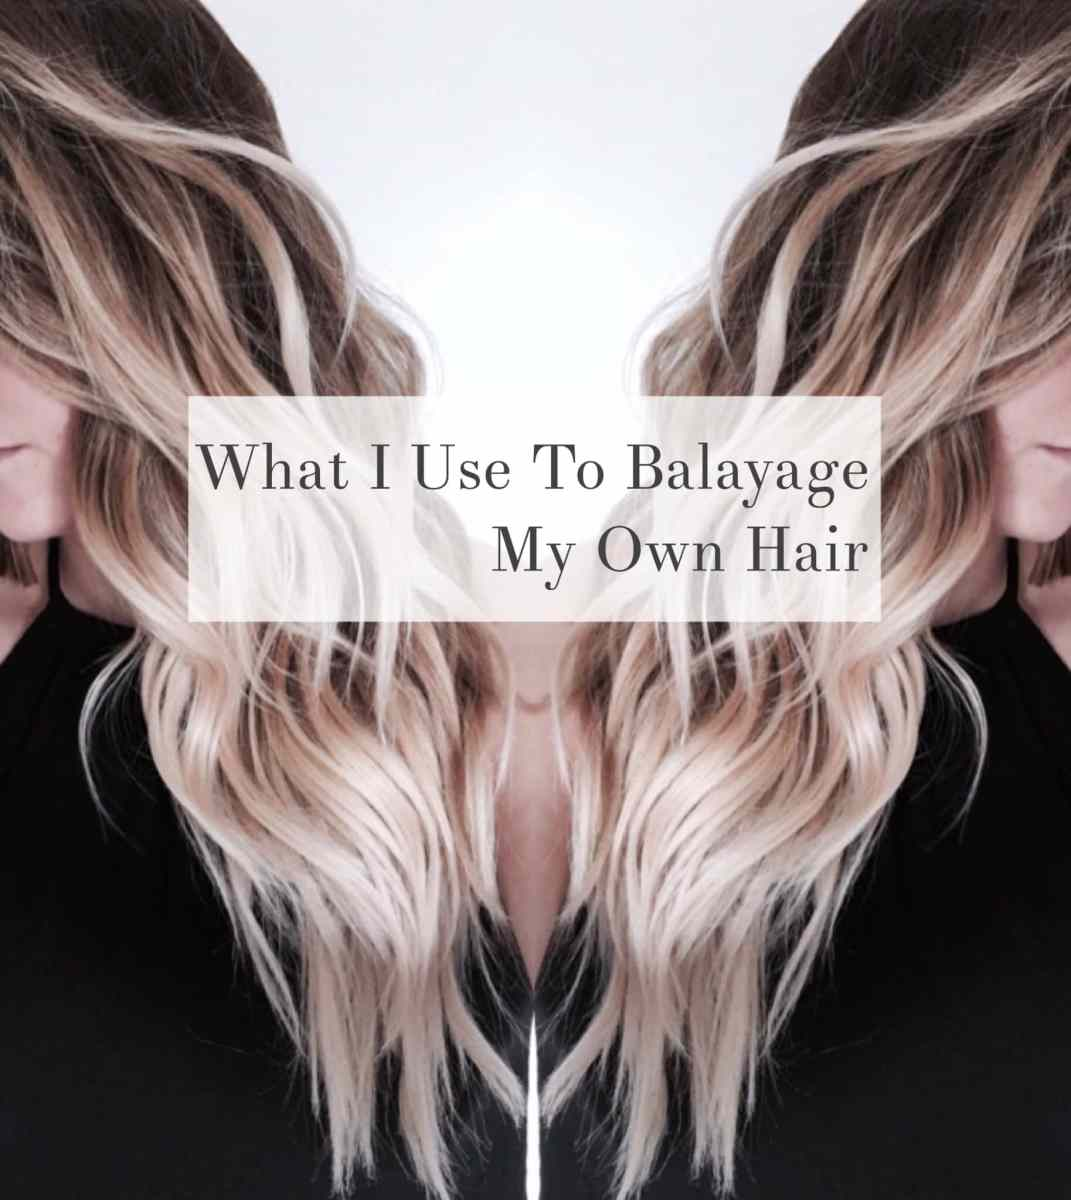 What I Use to Balayage my Own Hair